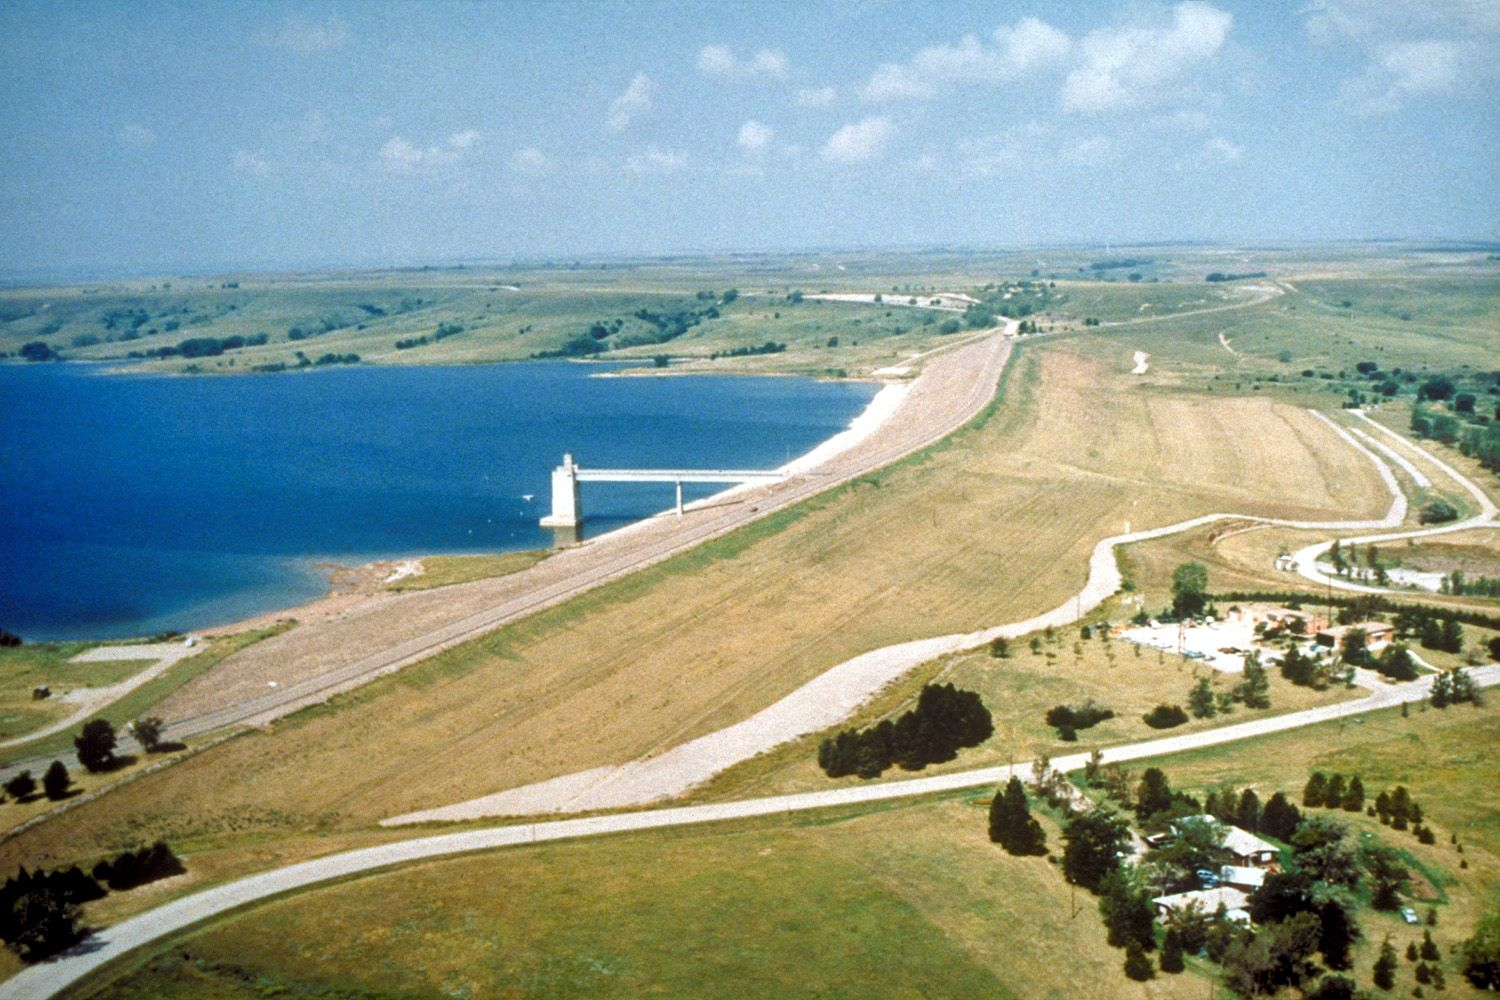 Kansas phillips county kirwin - Kirwin Dam Is A Dam In Phillips County Kansas Immediately Southwest Of The Town